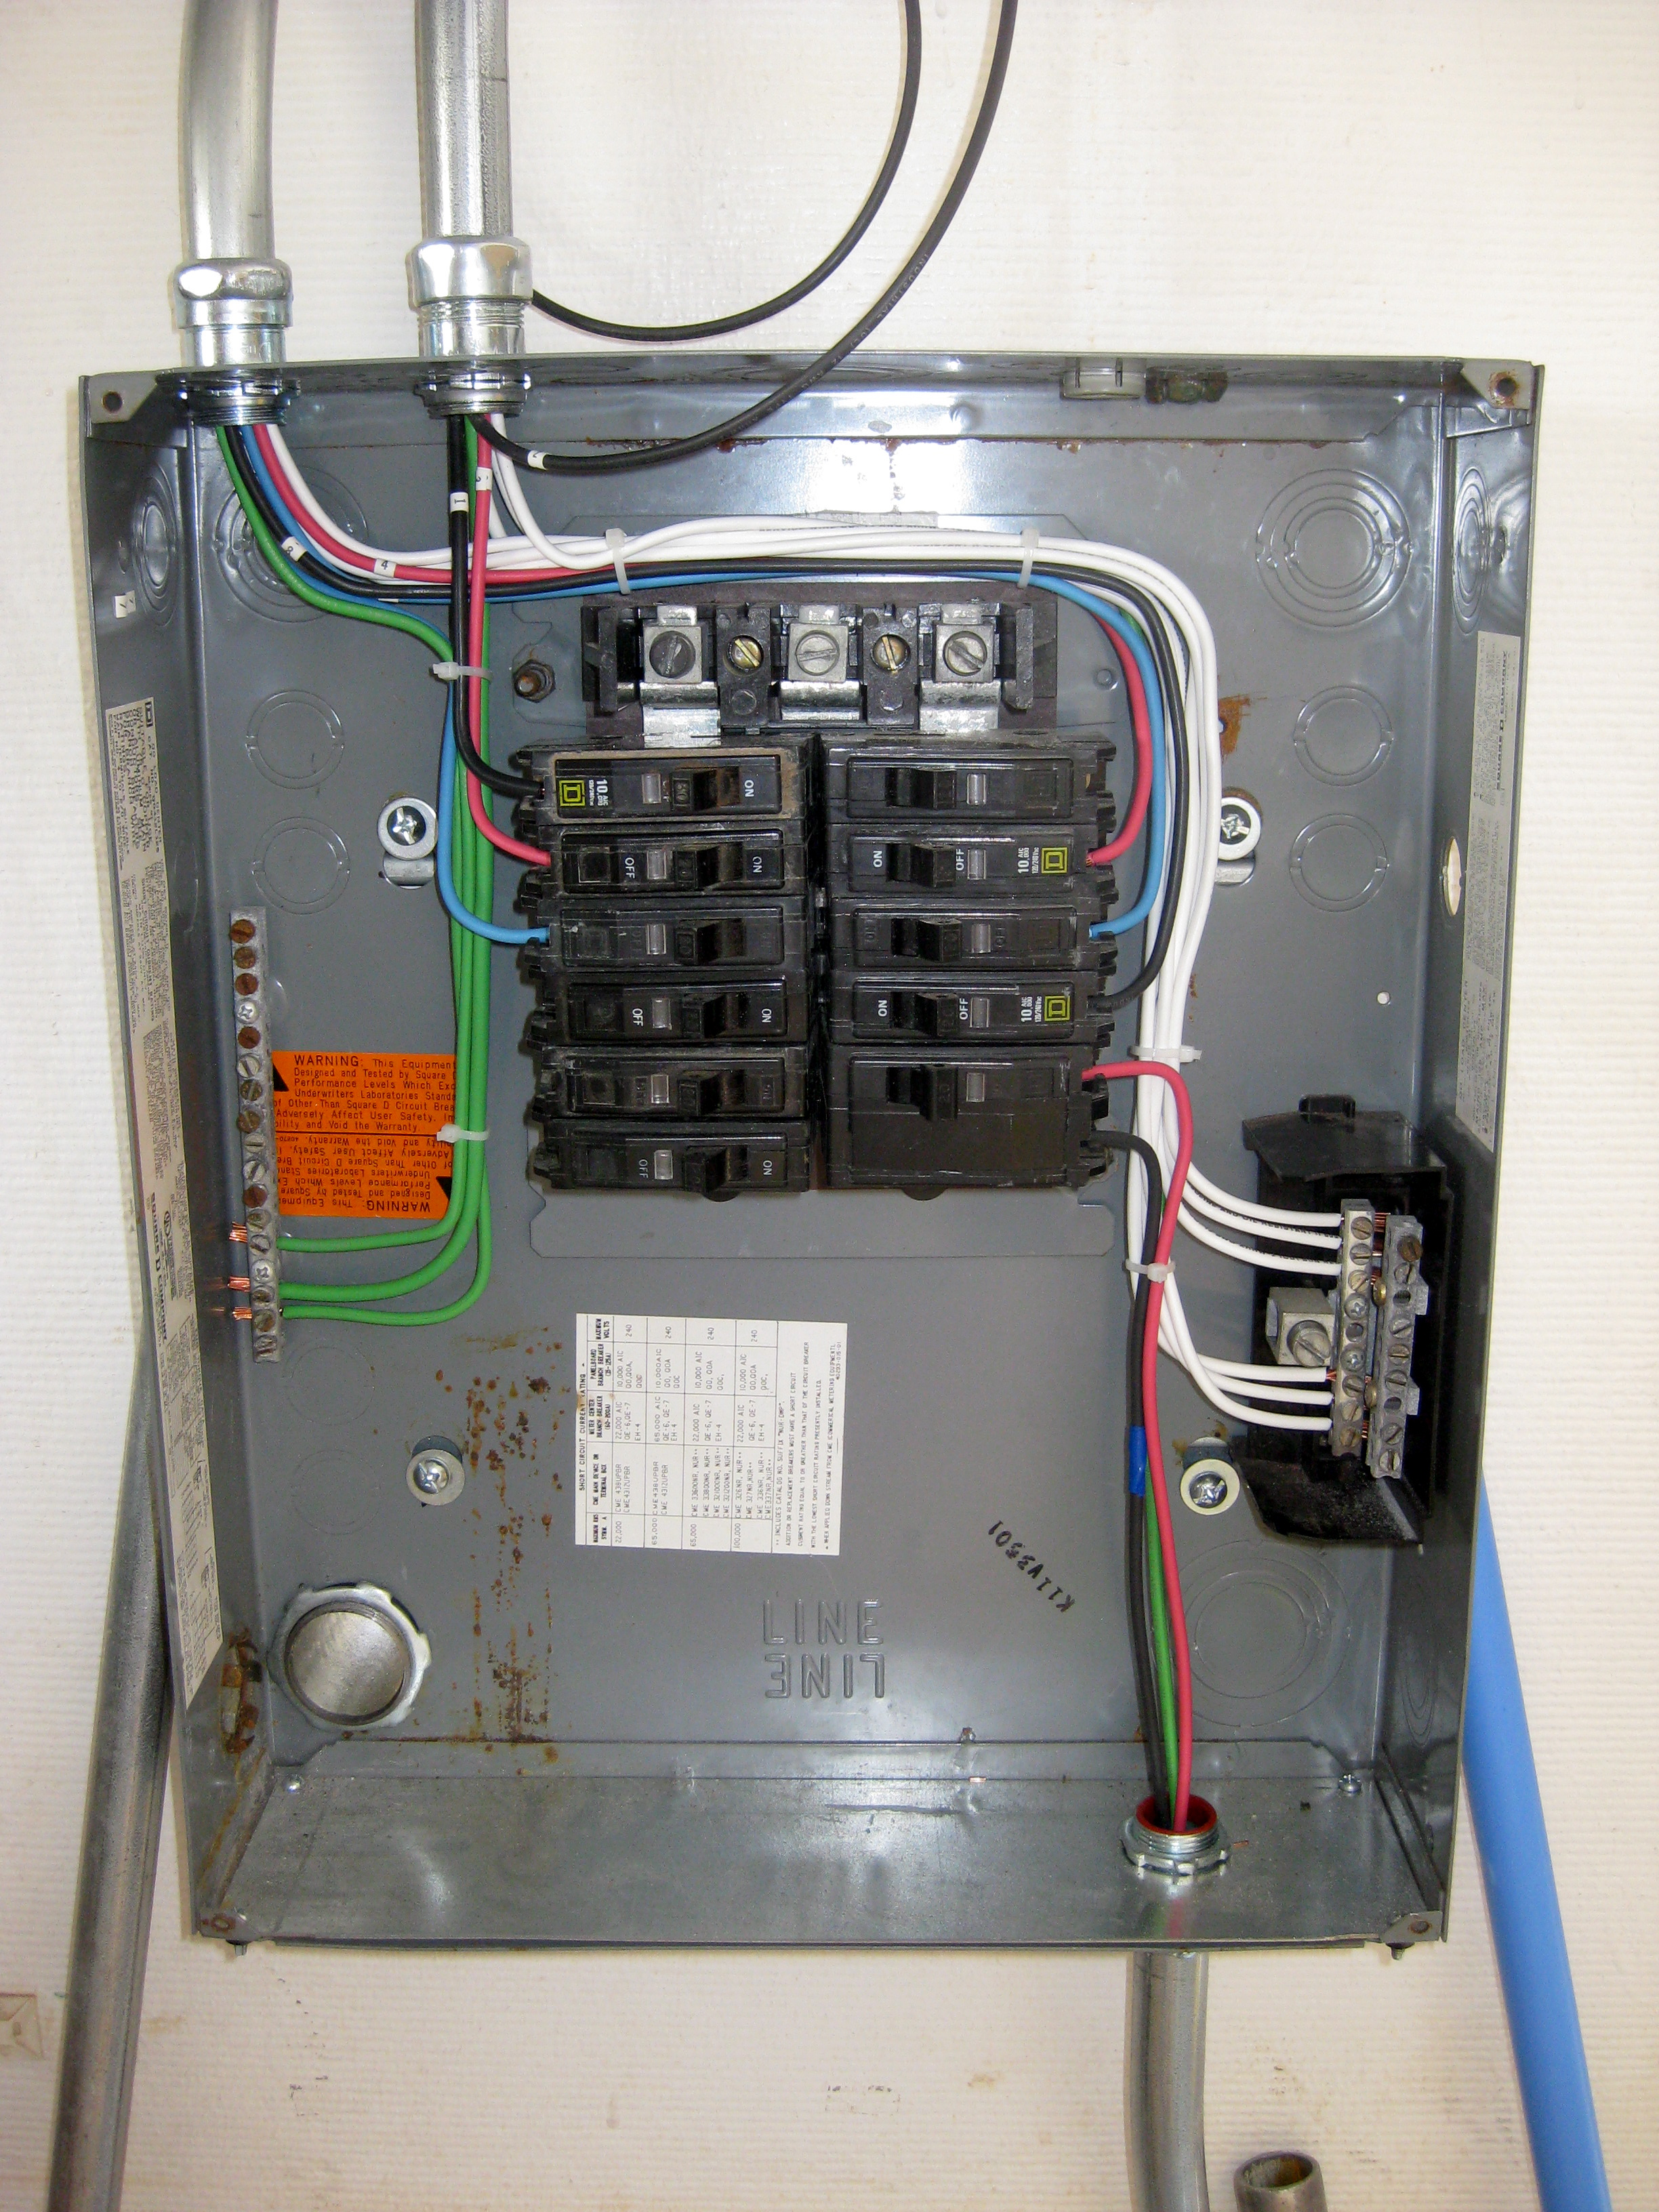 Proper Electrical Panel Clearances